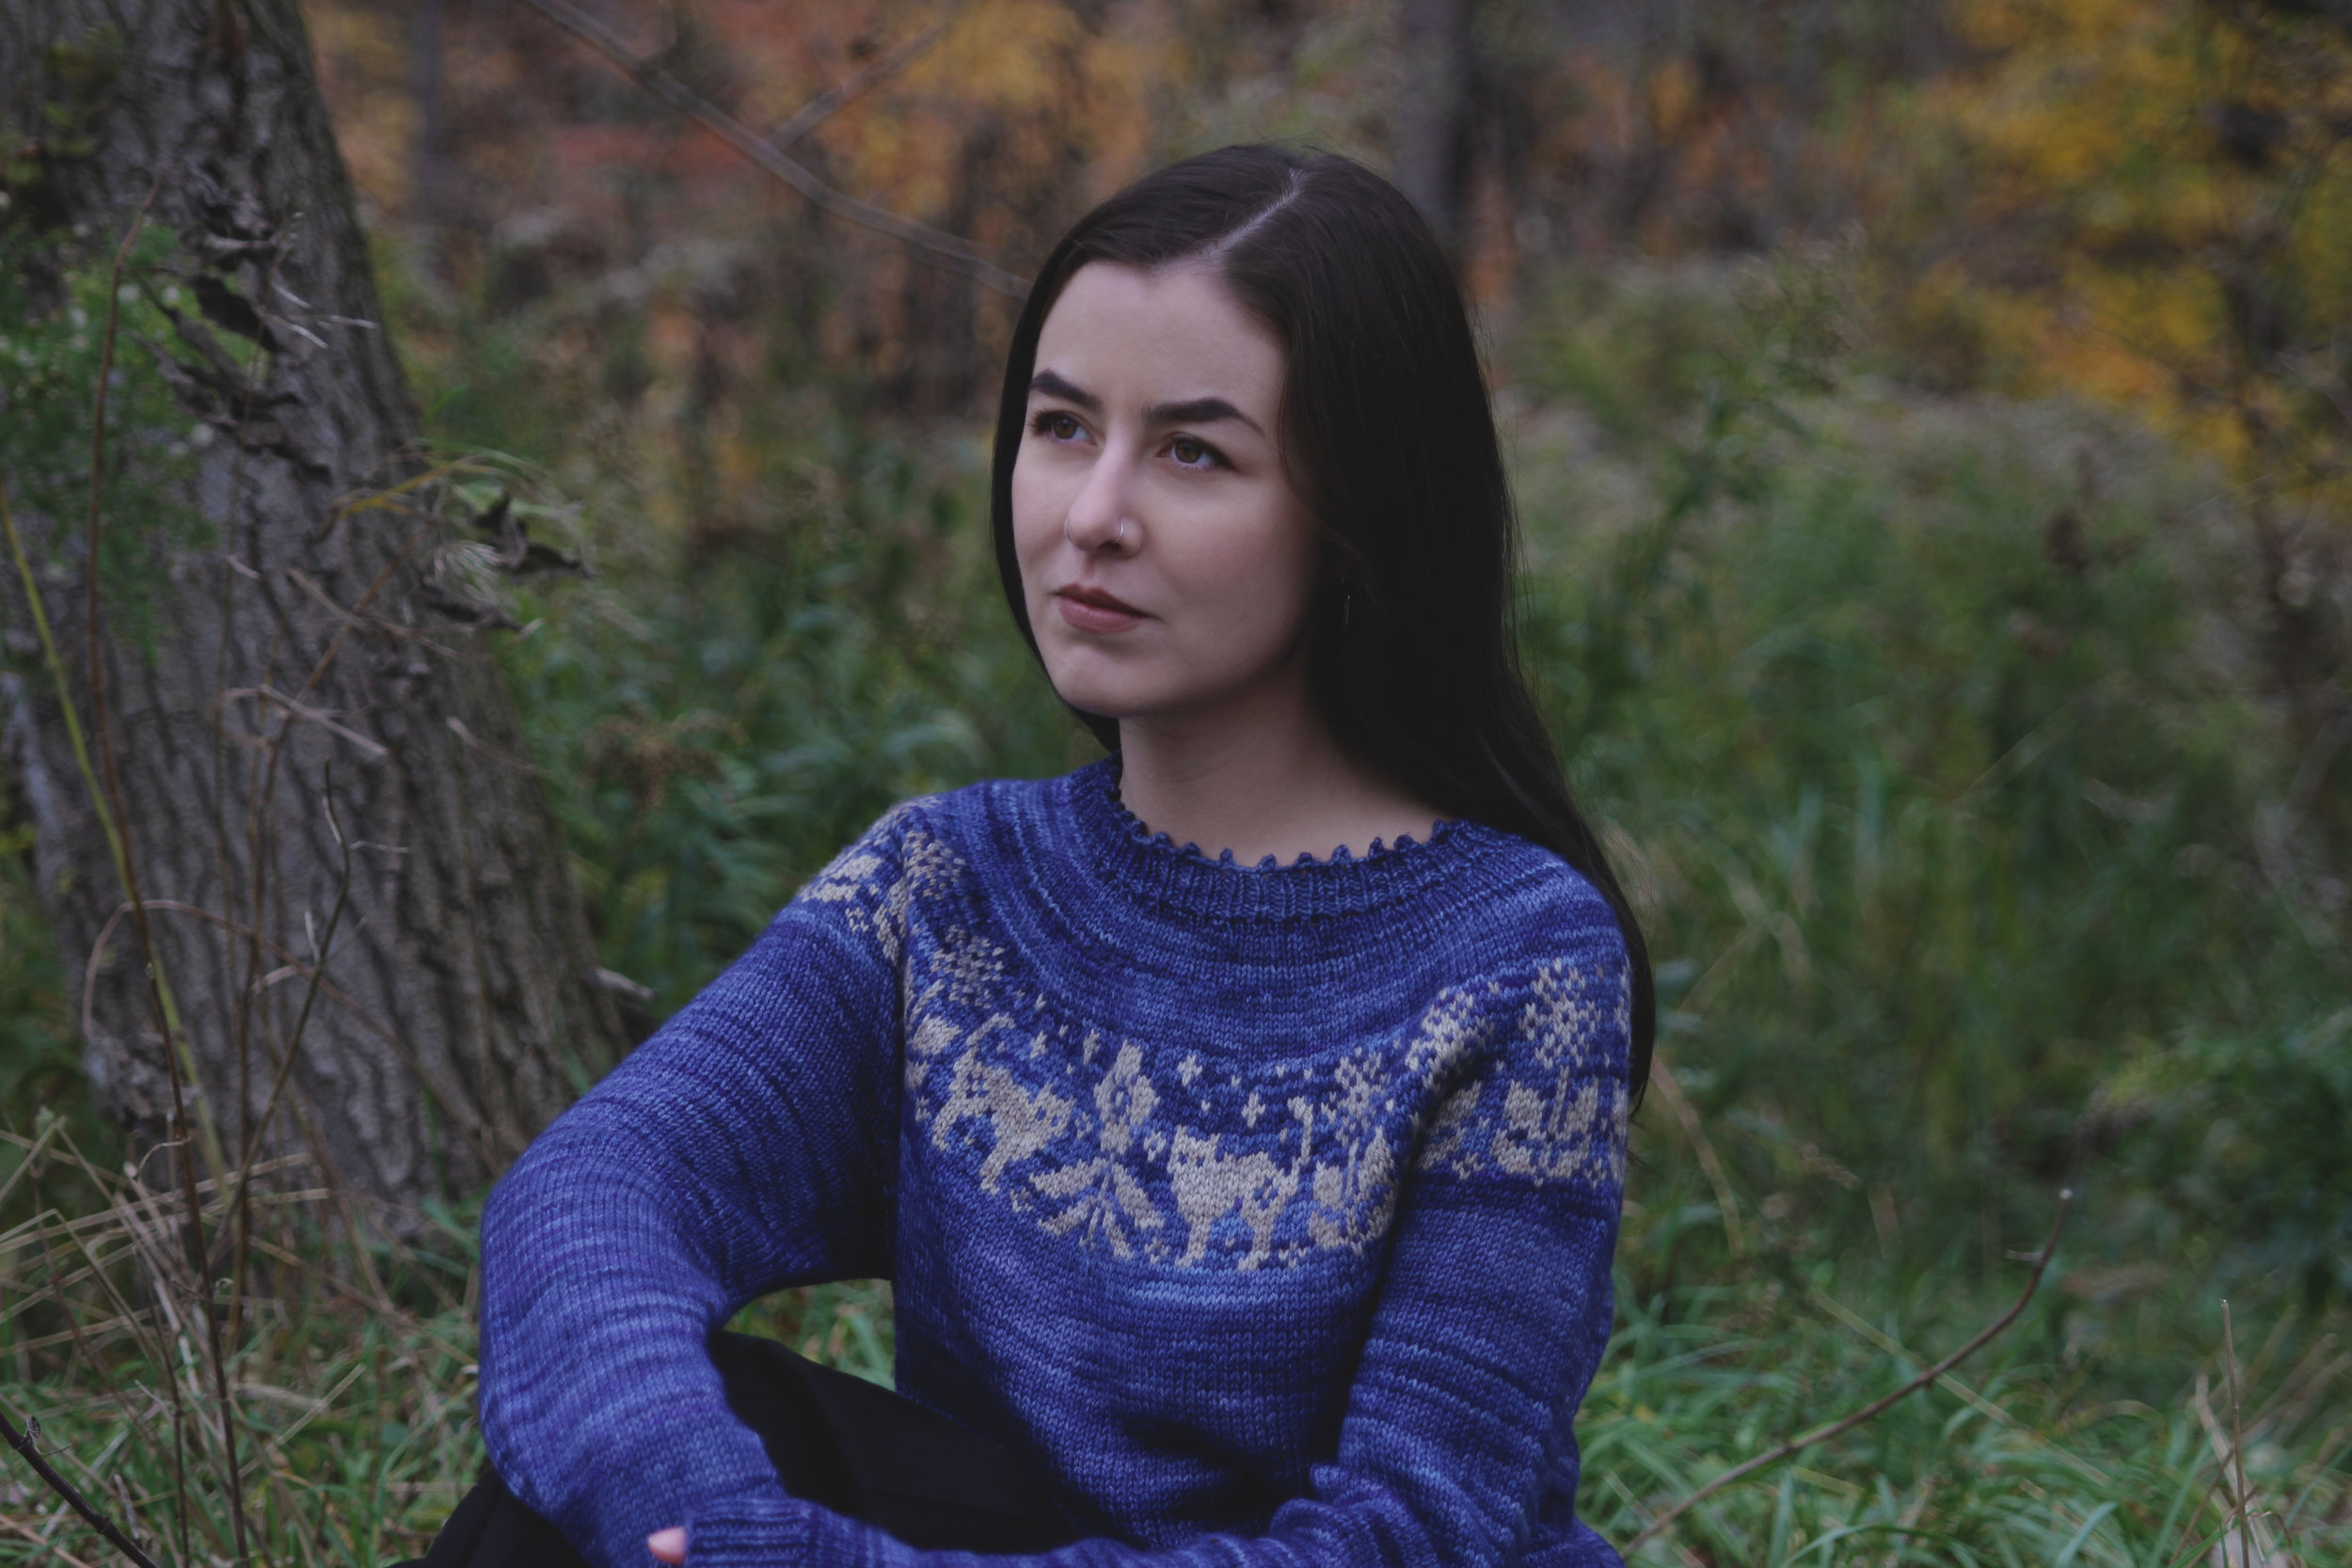 Half Japanese woman wearing a hand knit sweater sitting in the grass.